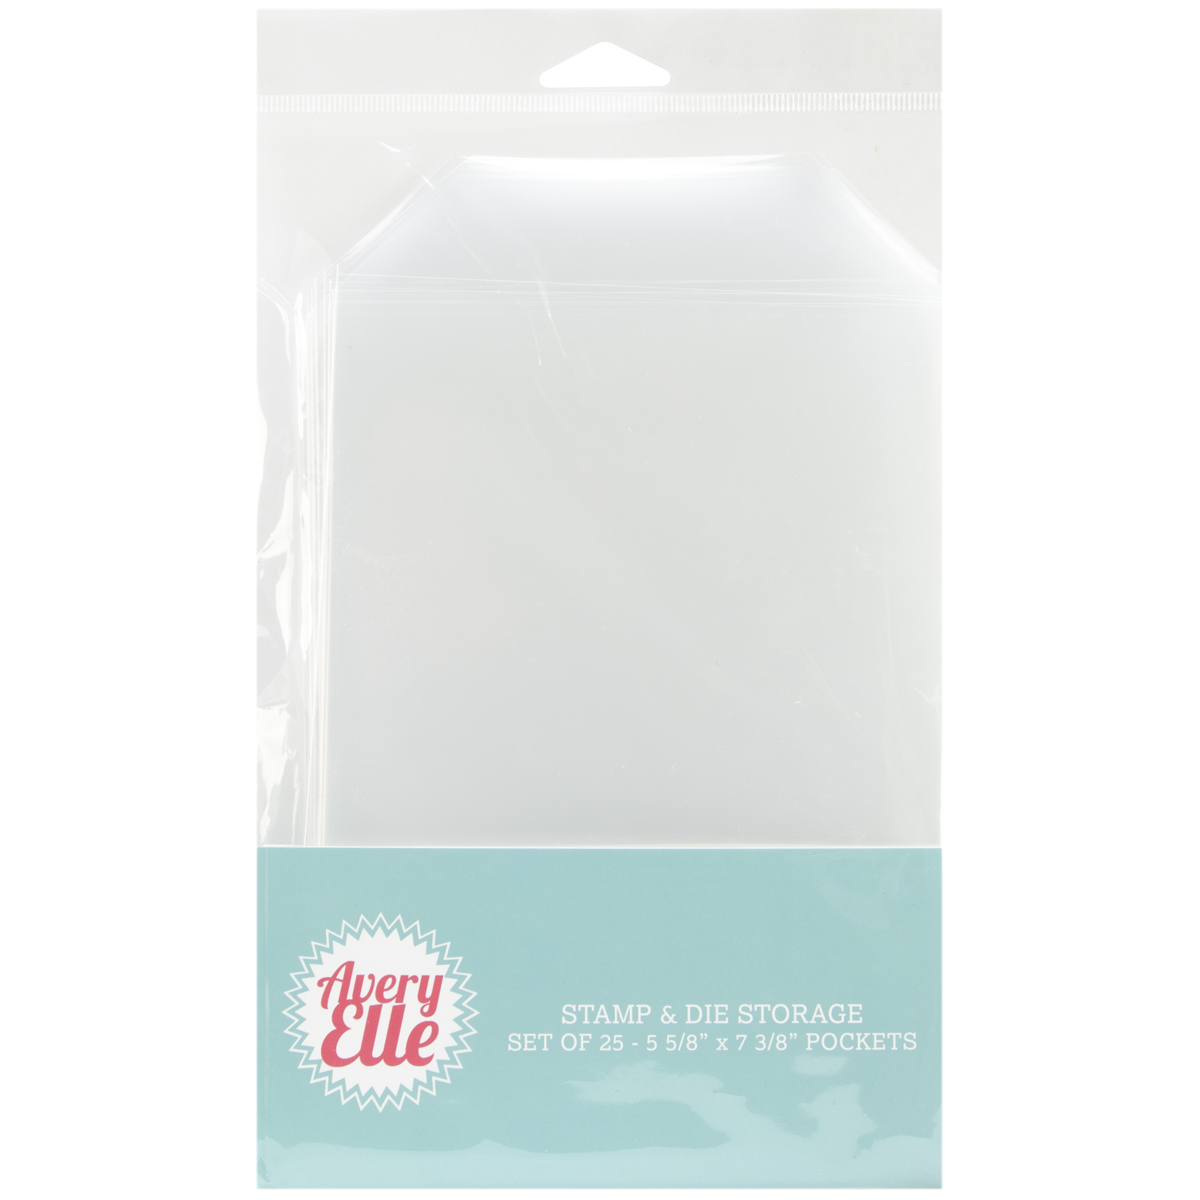 Avery Elle STAMP STORAGE POCKETS SS-25 zoom image